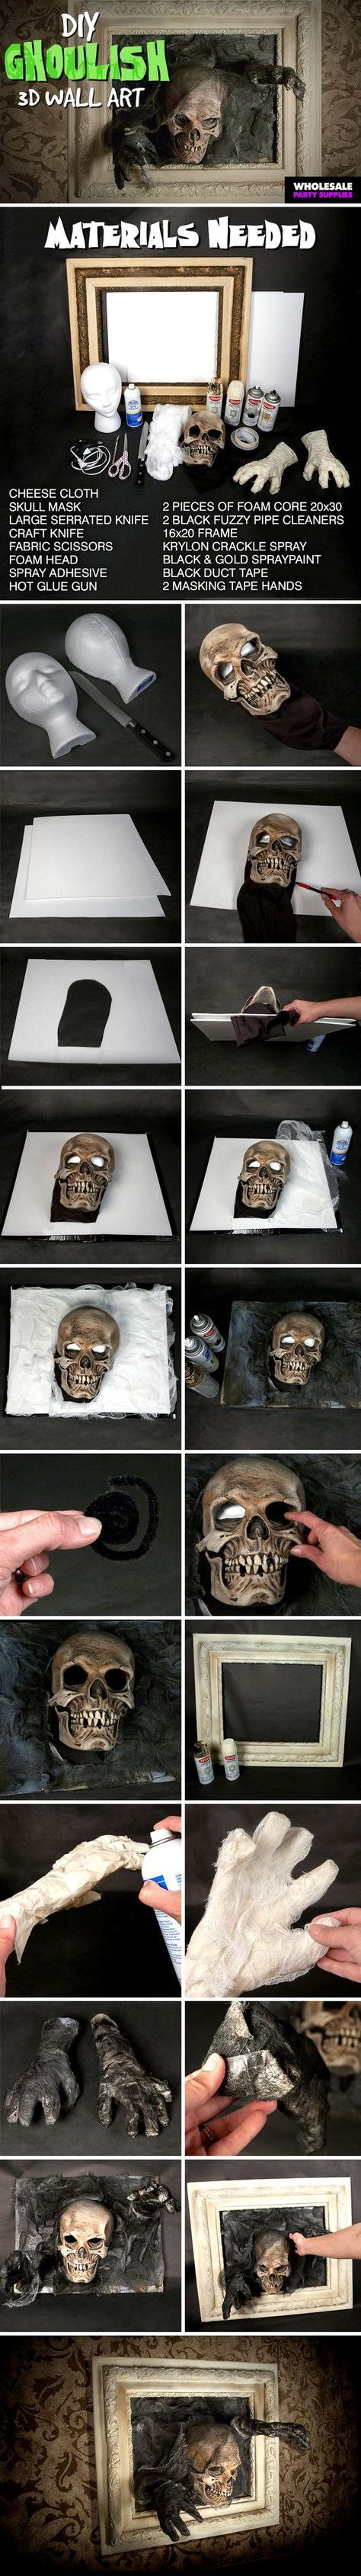 DIY your very own 3D wall art for Halloween!